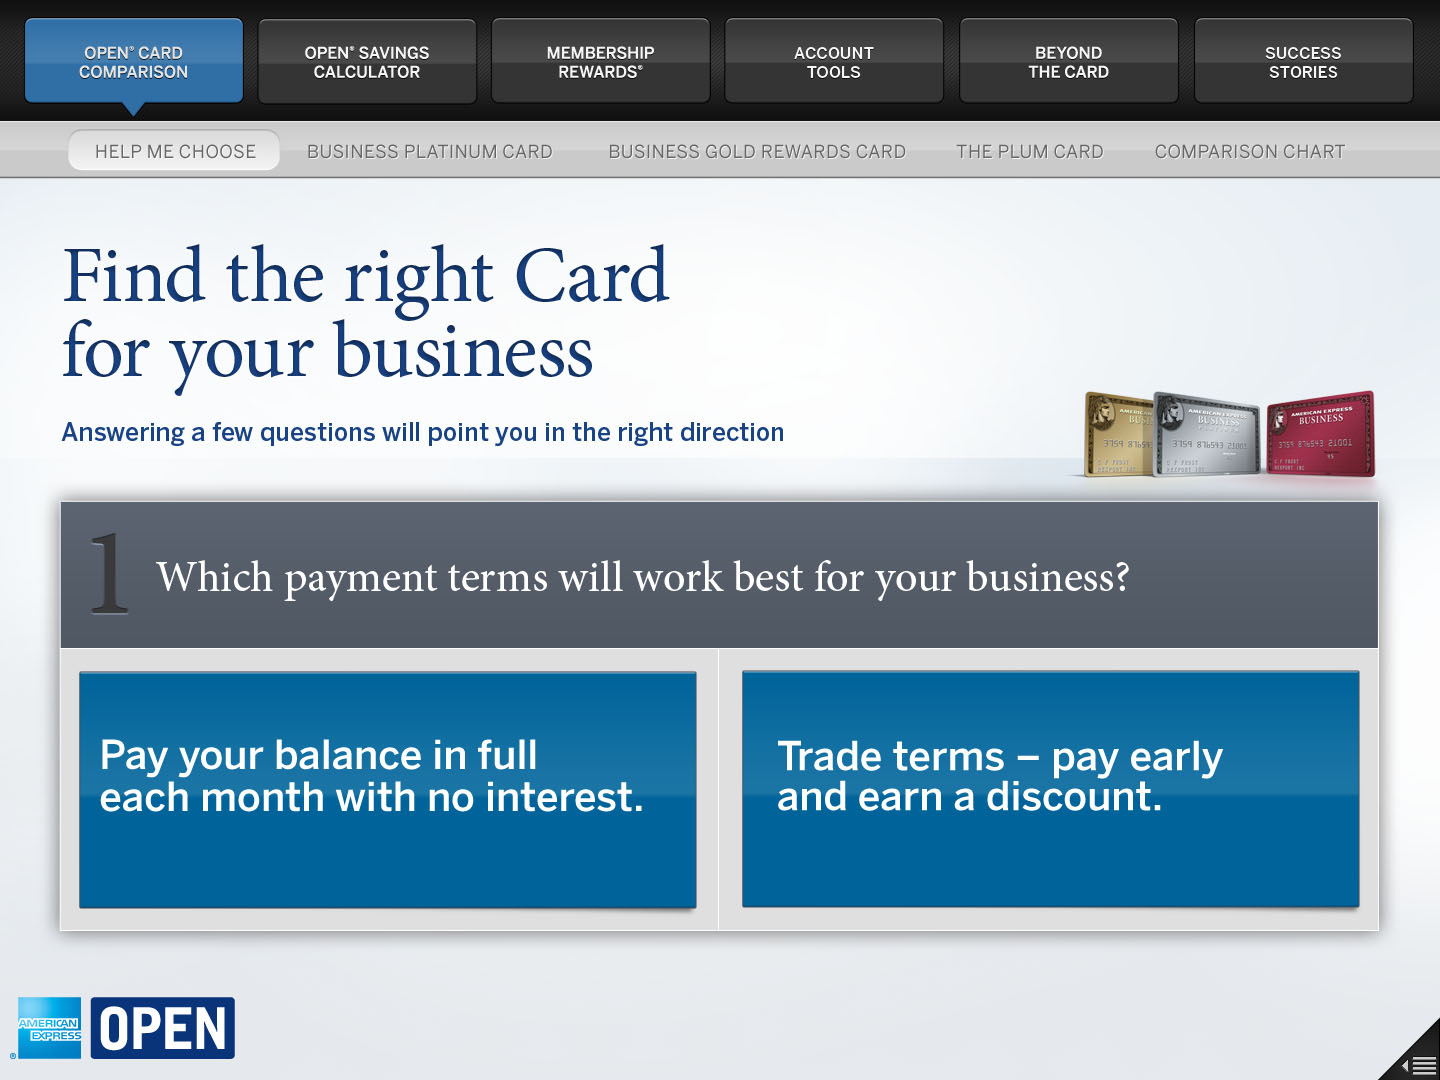 opentouch1_0002_cards_help1.jpg